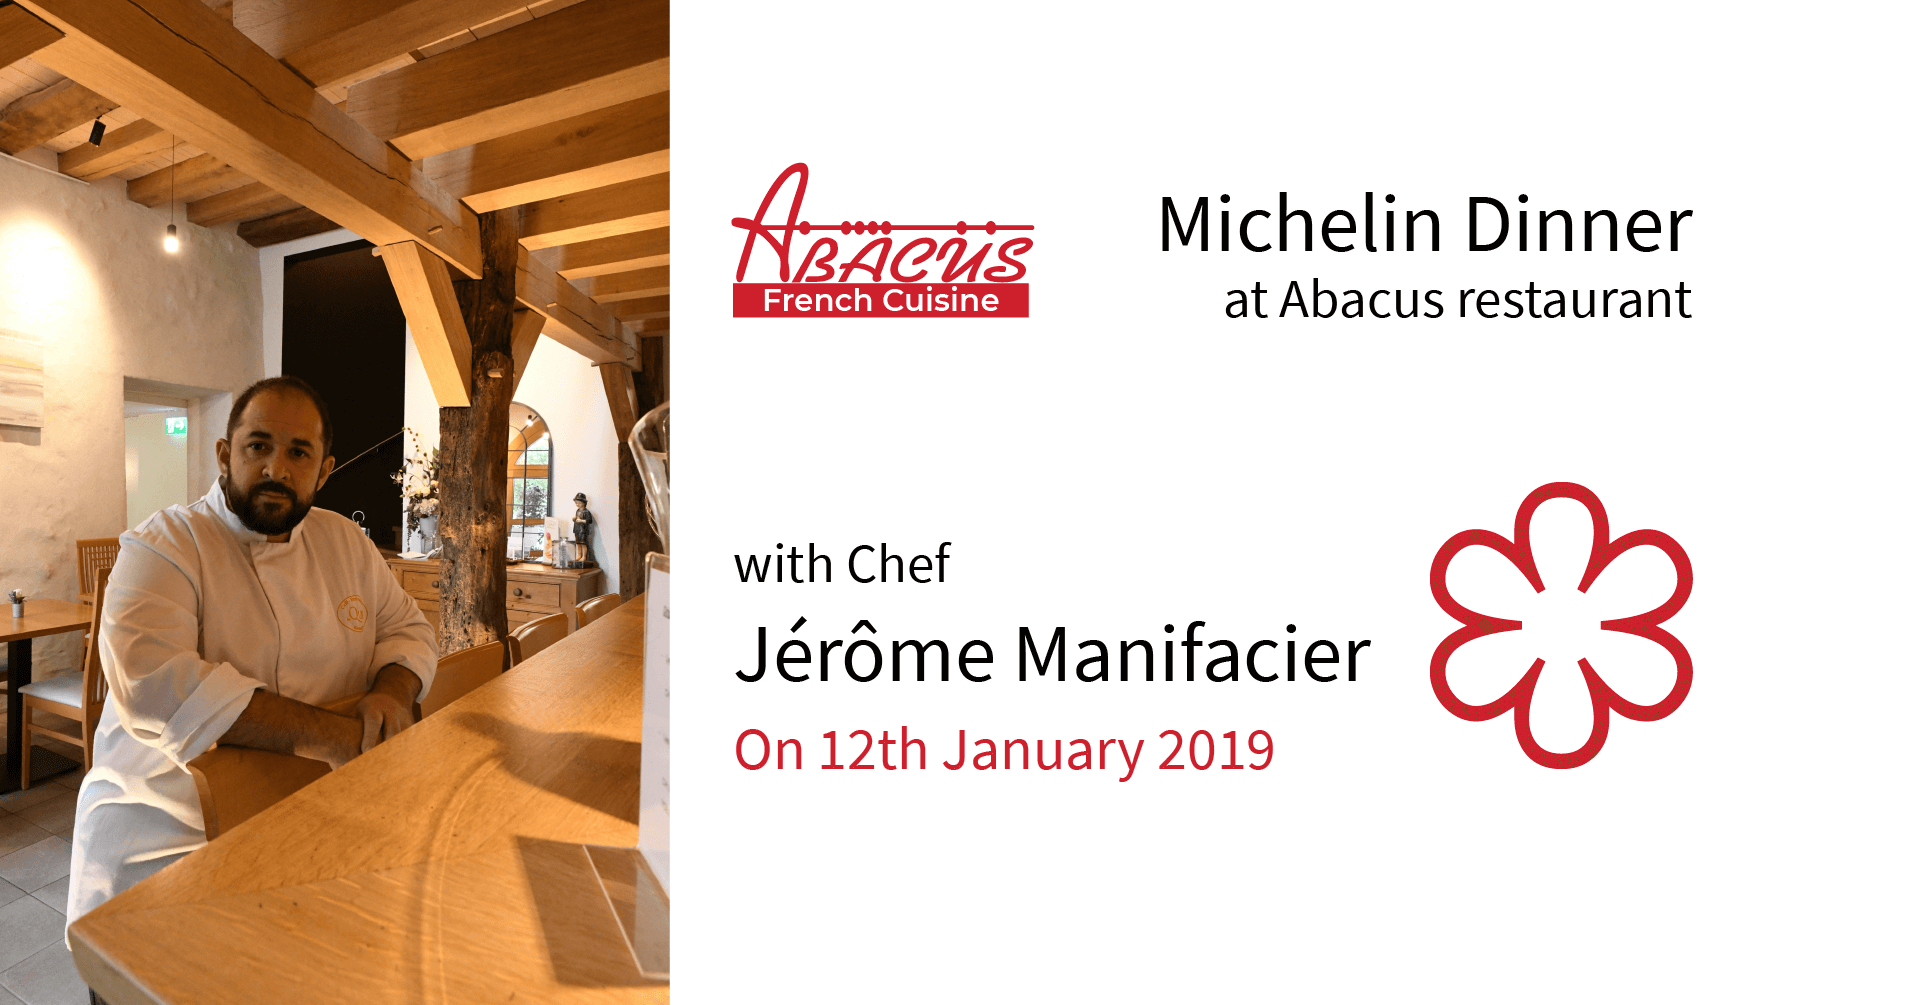 Start 2019 on the good palate with an exclusive Michelin star dinner at Abacus restaurant